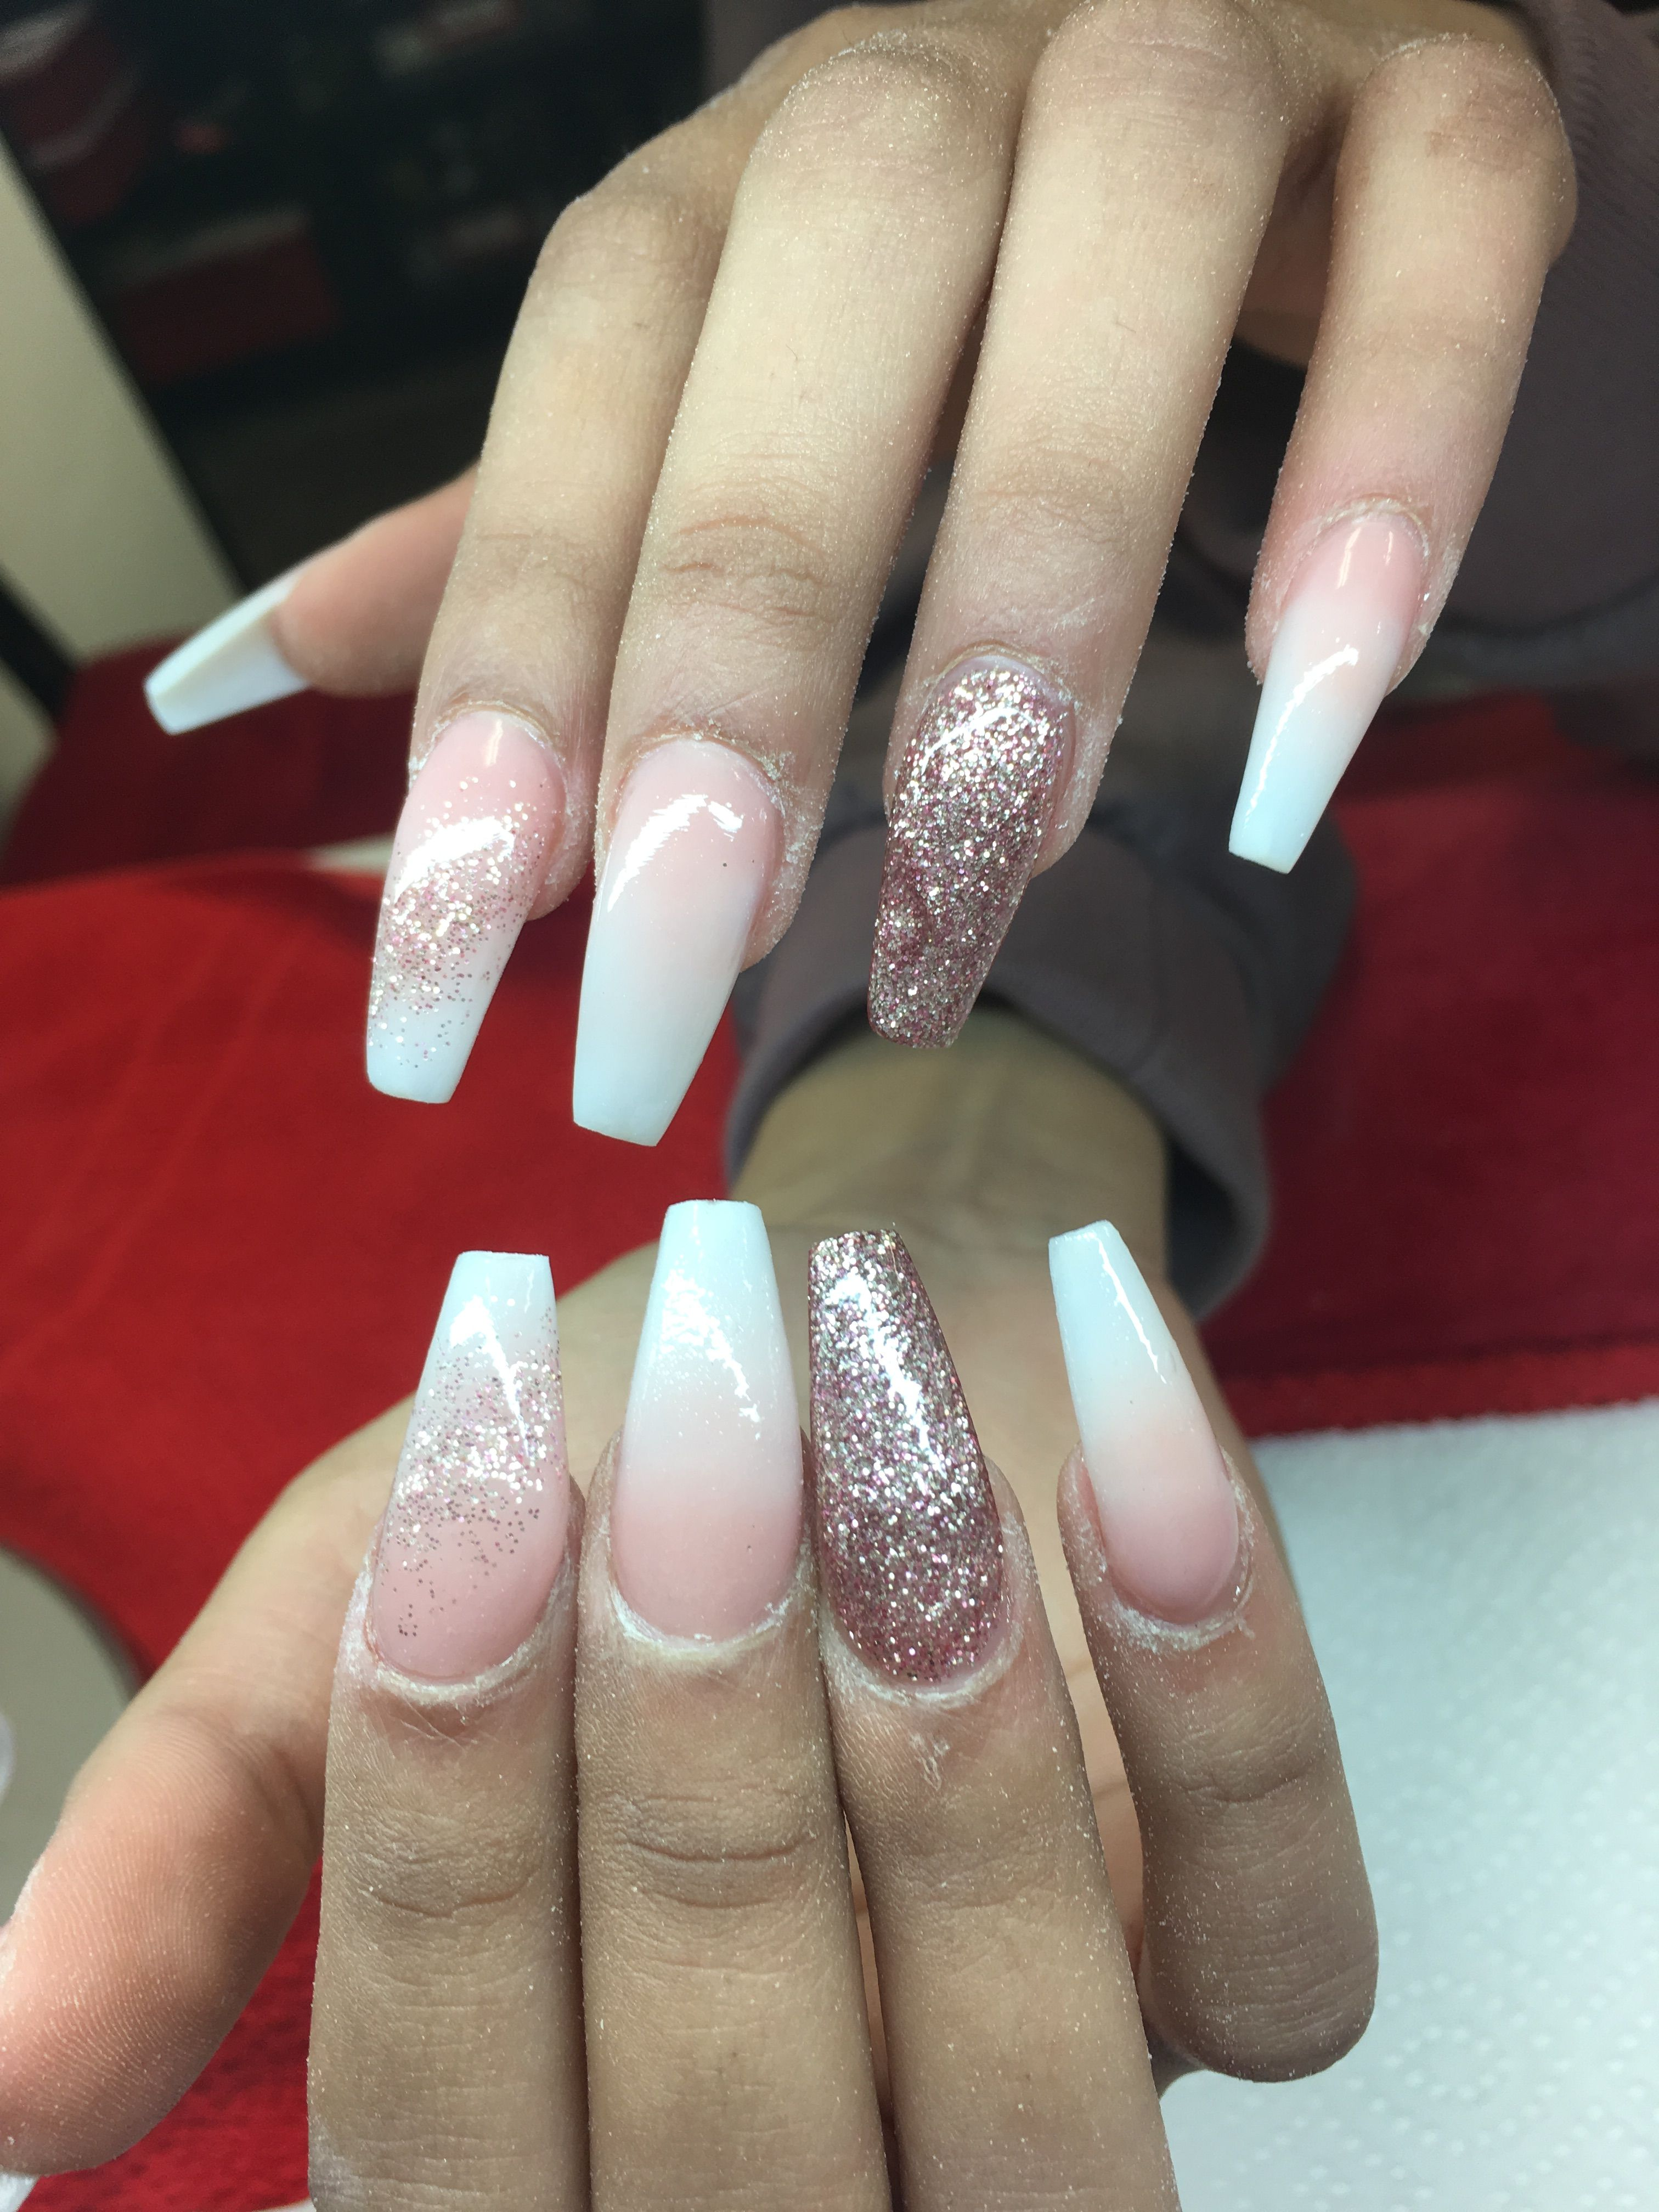 Baby Boomers Baby Bloomer Nails Baby Boomers Nails Glitter Gel Nails